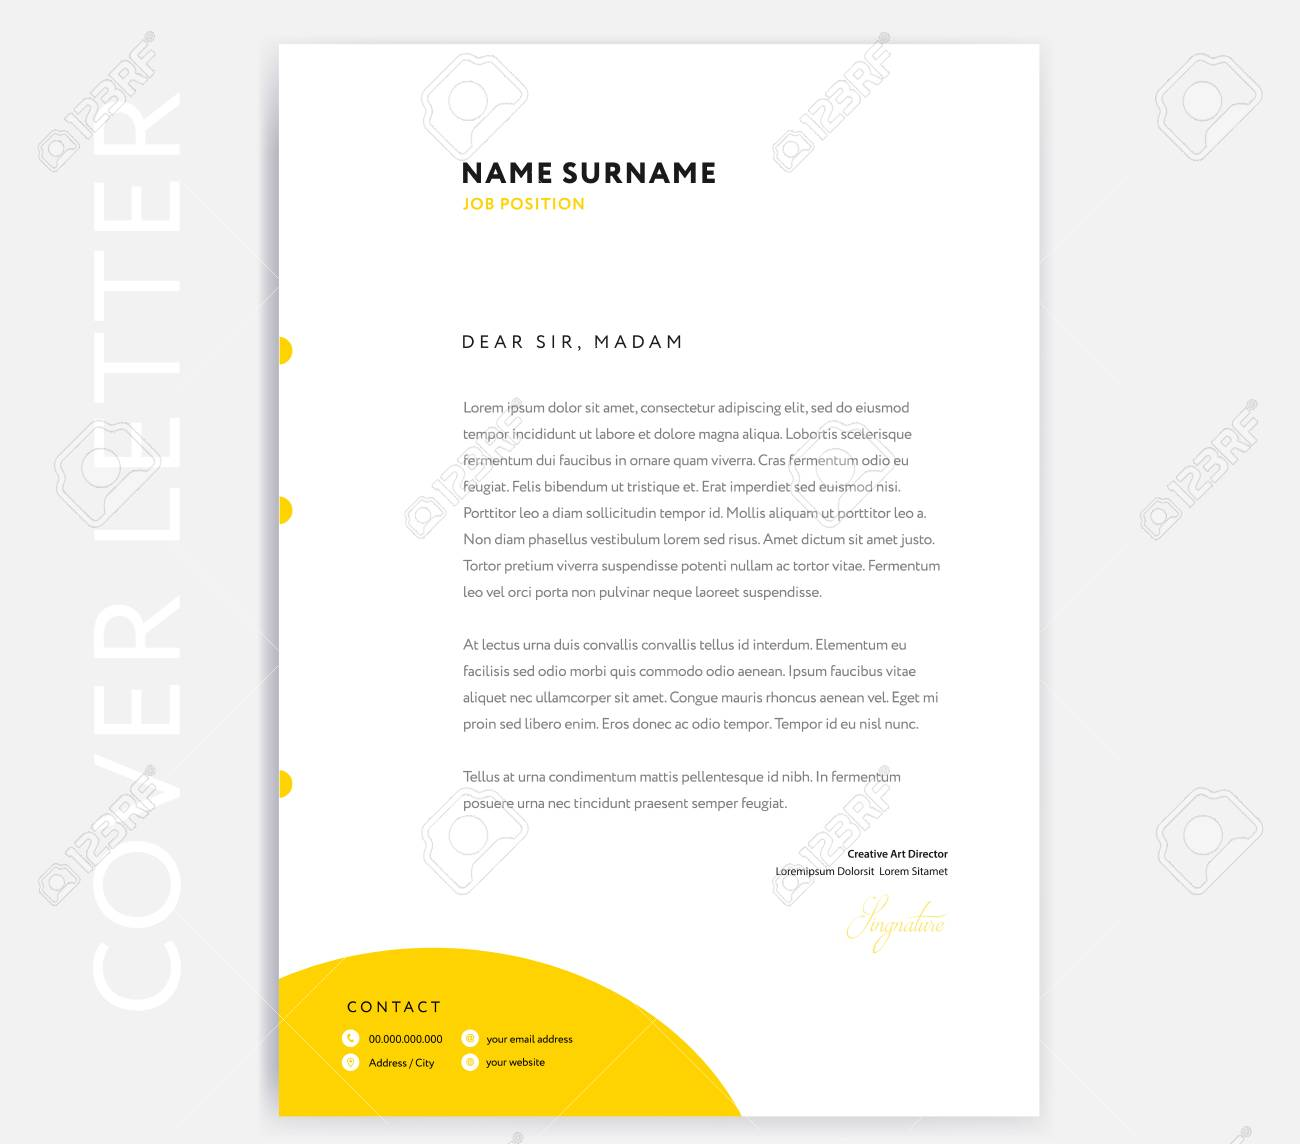 What To Put On A Cv Cover Letter Yellow Cv Cover Letter Template Design Curriculum Vitae Minimalist